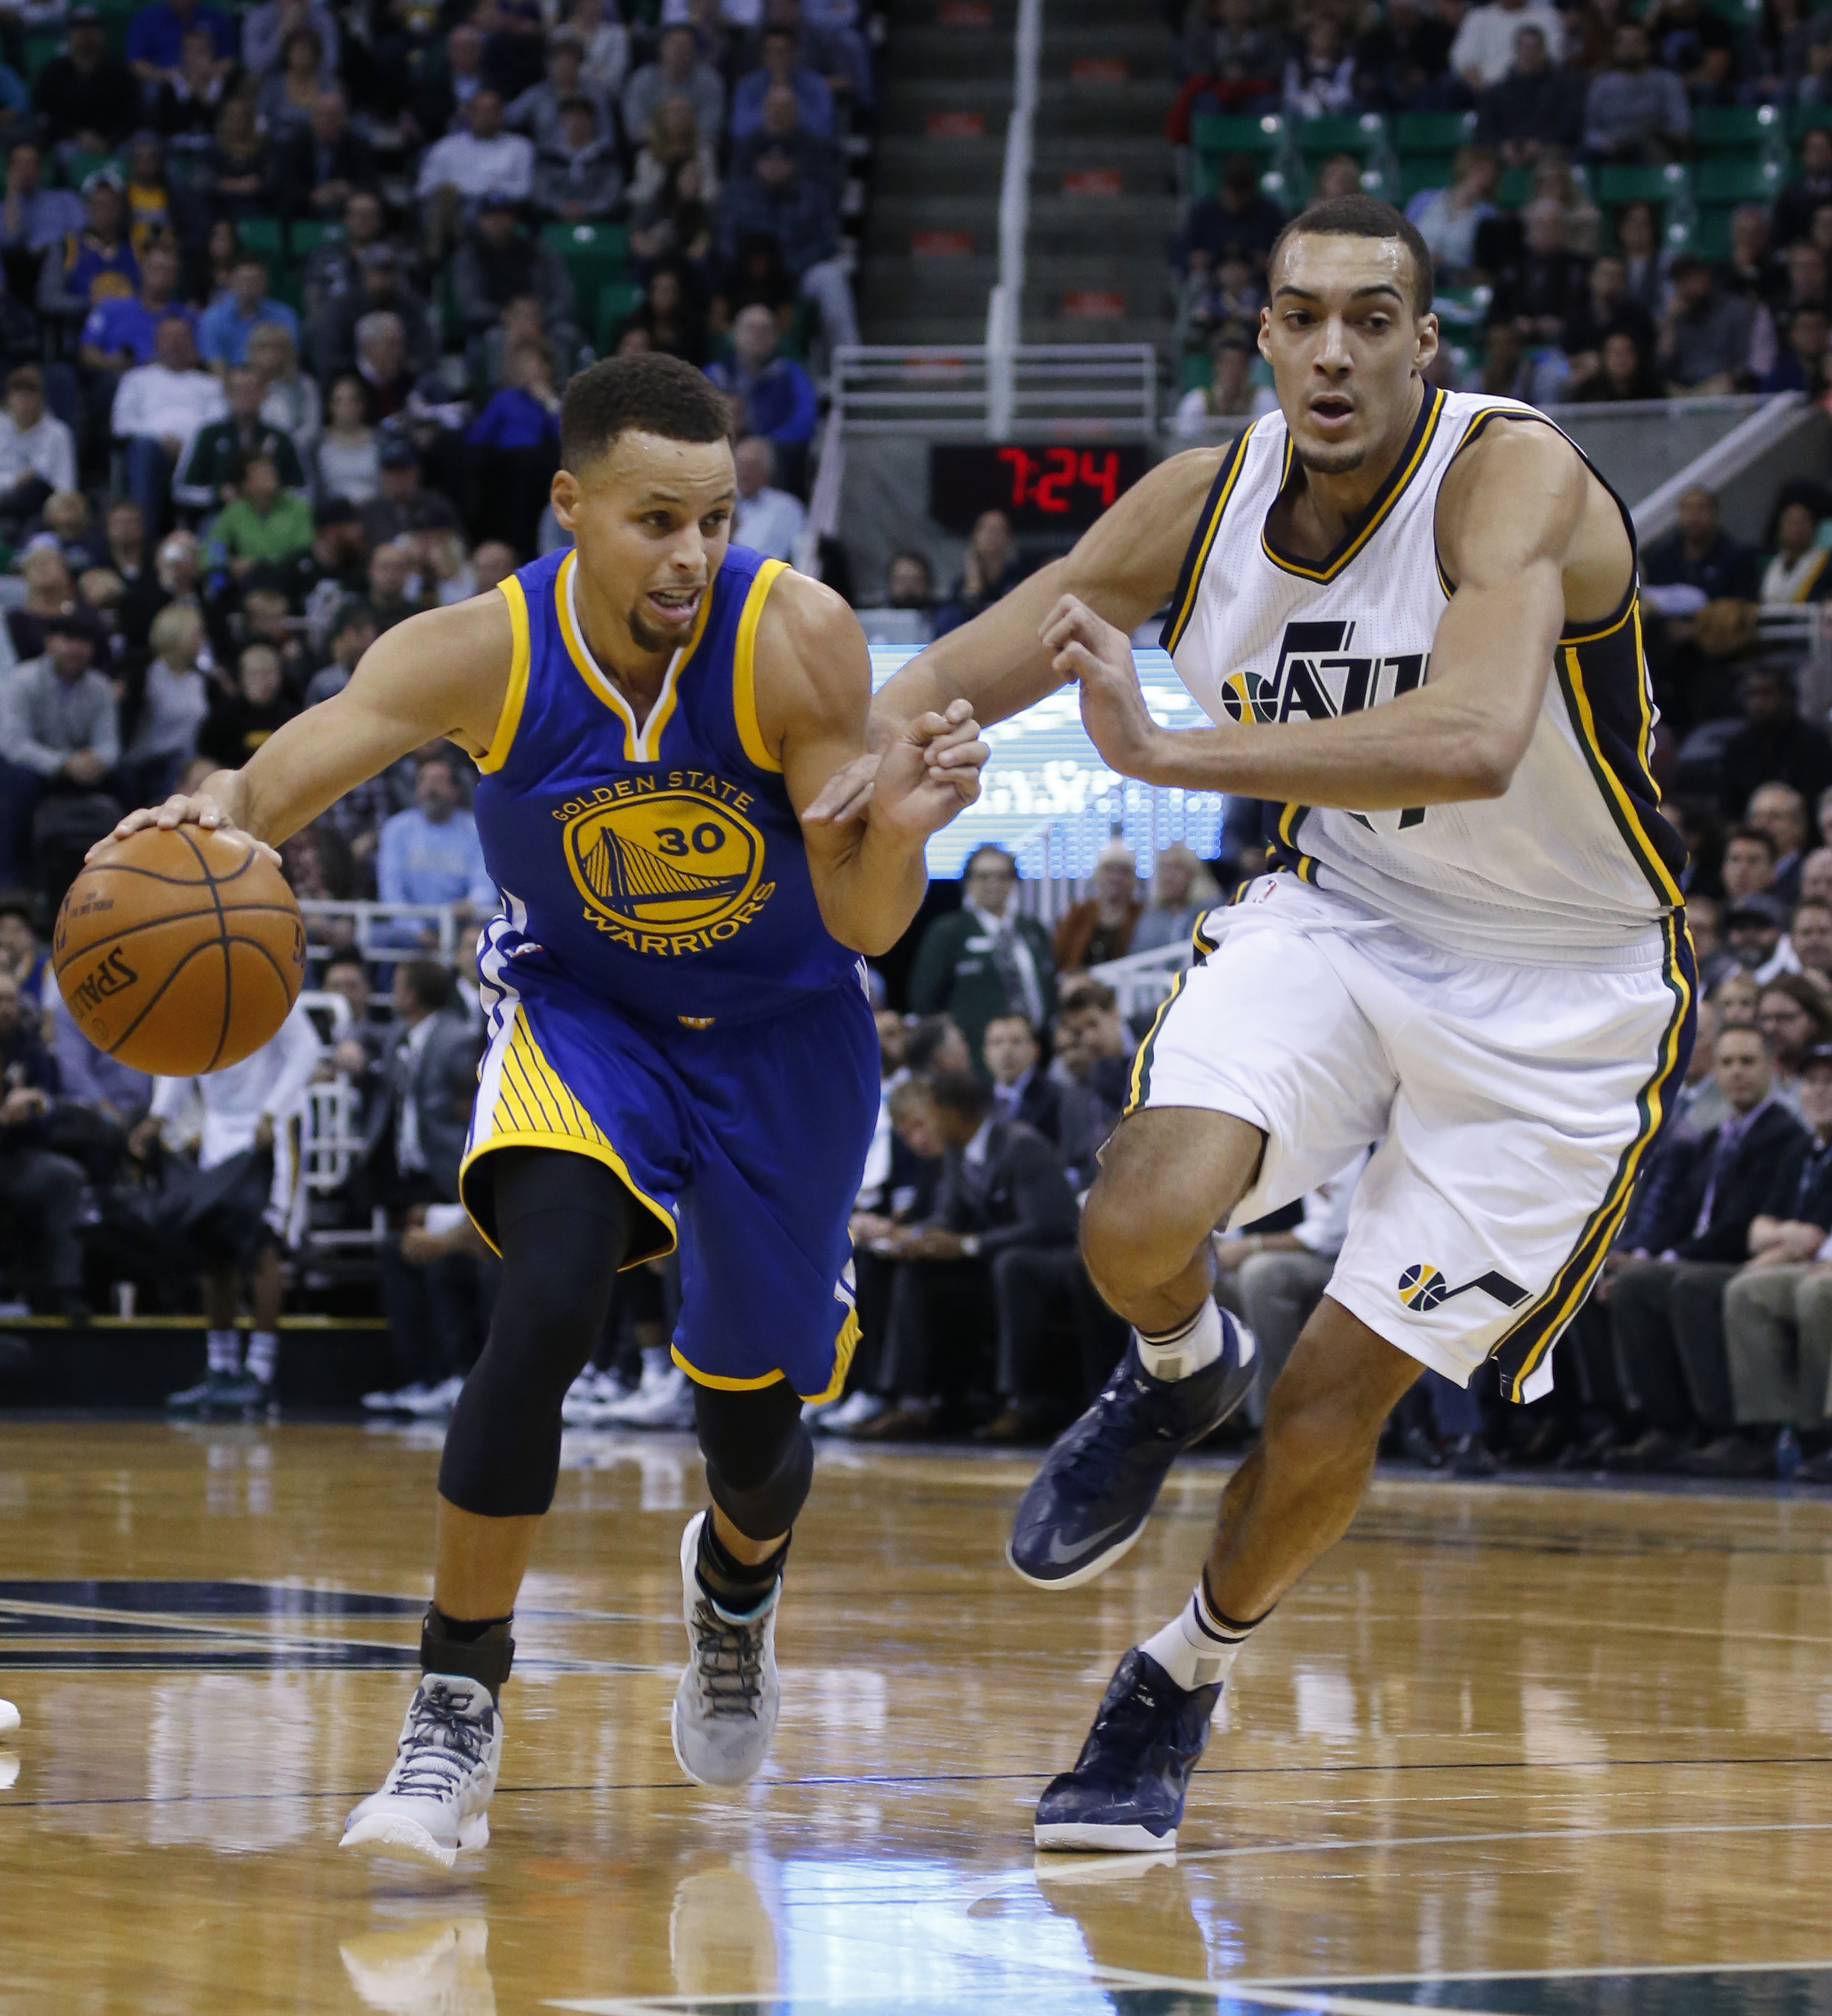 SALT LAKE CITY, UT - NOVEMBER 30: Guard Stephen Curry #30 of the Golden State Warriors drives past  Center Rudy Gobert #27 of the Utah Jazz during the first half of an NBA game November 30, 2014 at Vivint Smart Home Arena in Salt Lake City, Utah. (Photo b